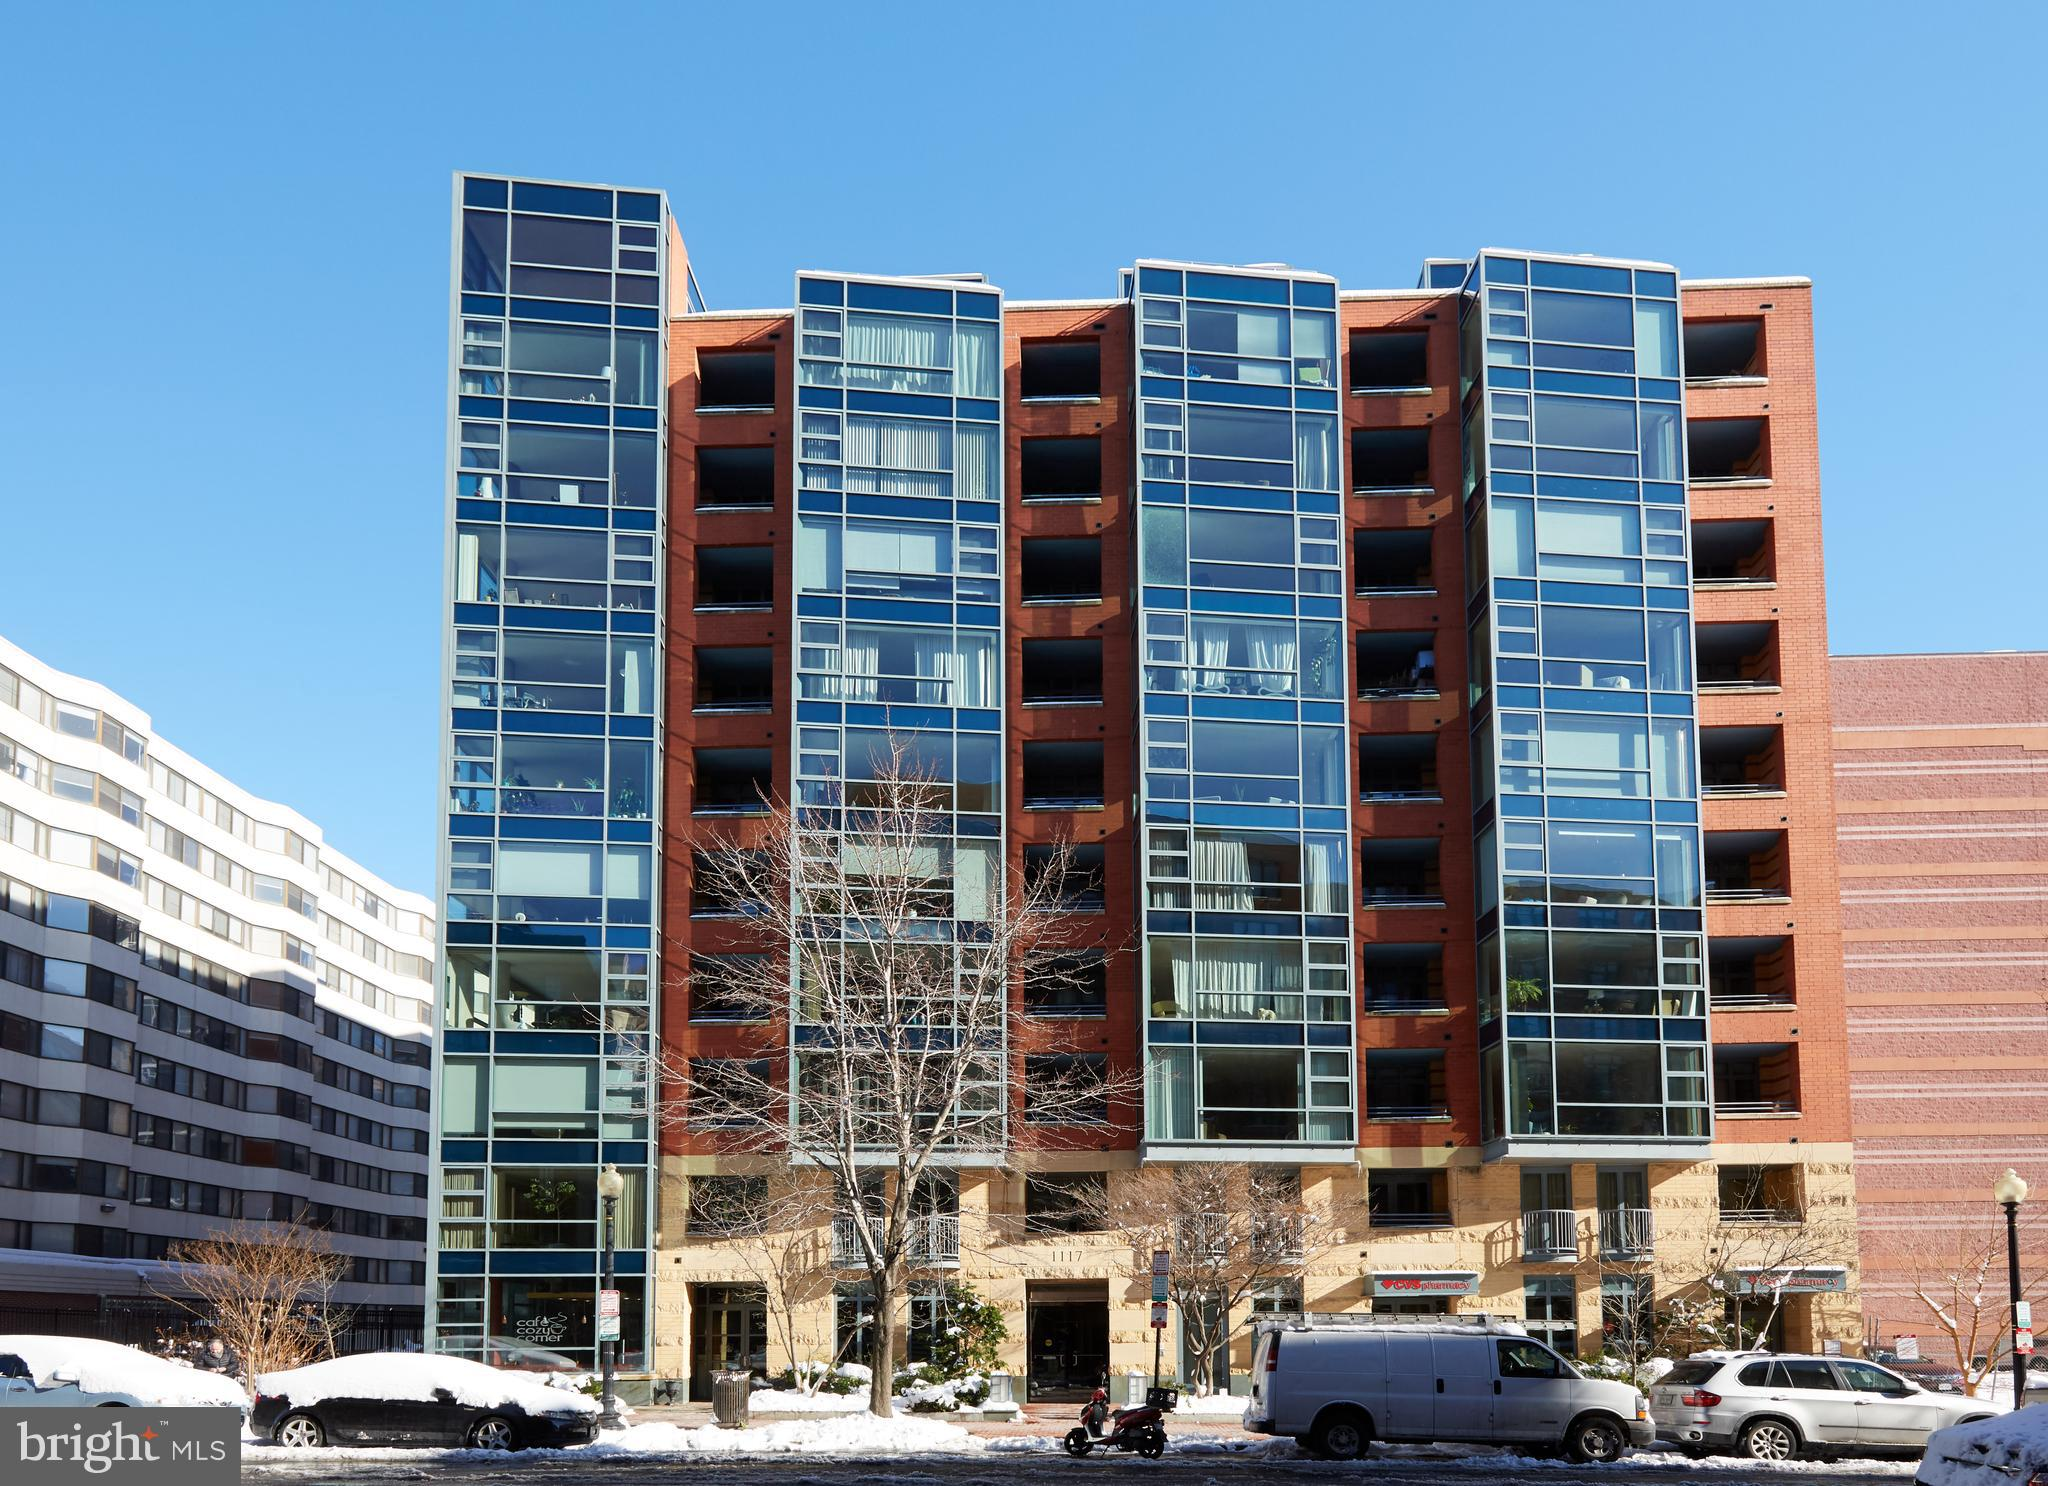 Welcome to Apartment 1103 at Quincy Court. This exceptional penthouse residence is the essence of ur